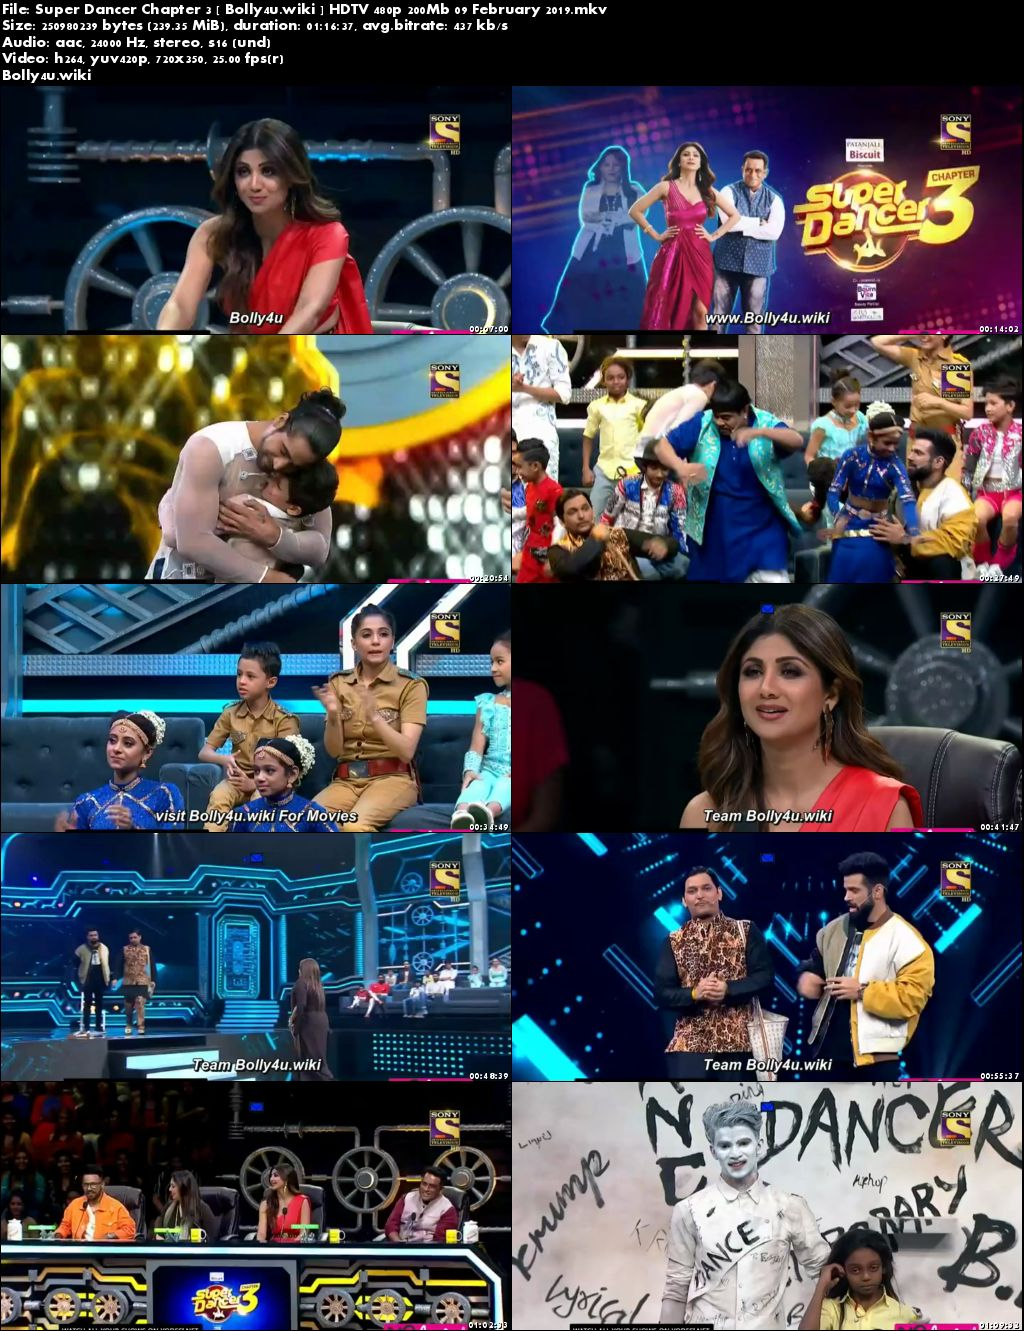 Super Dancer Chapter 3 HDTV 480p 200Mb 09 February 2019 Download